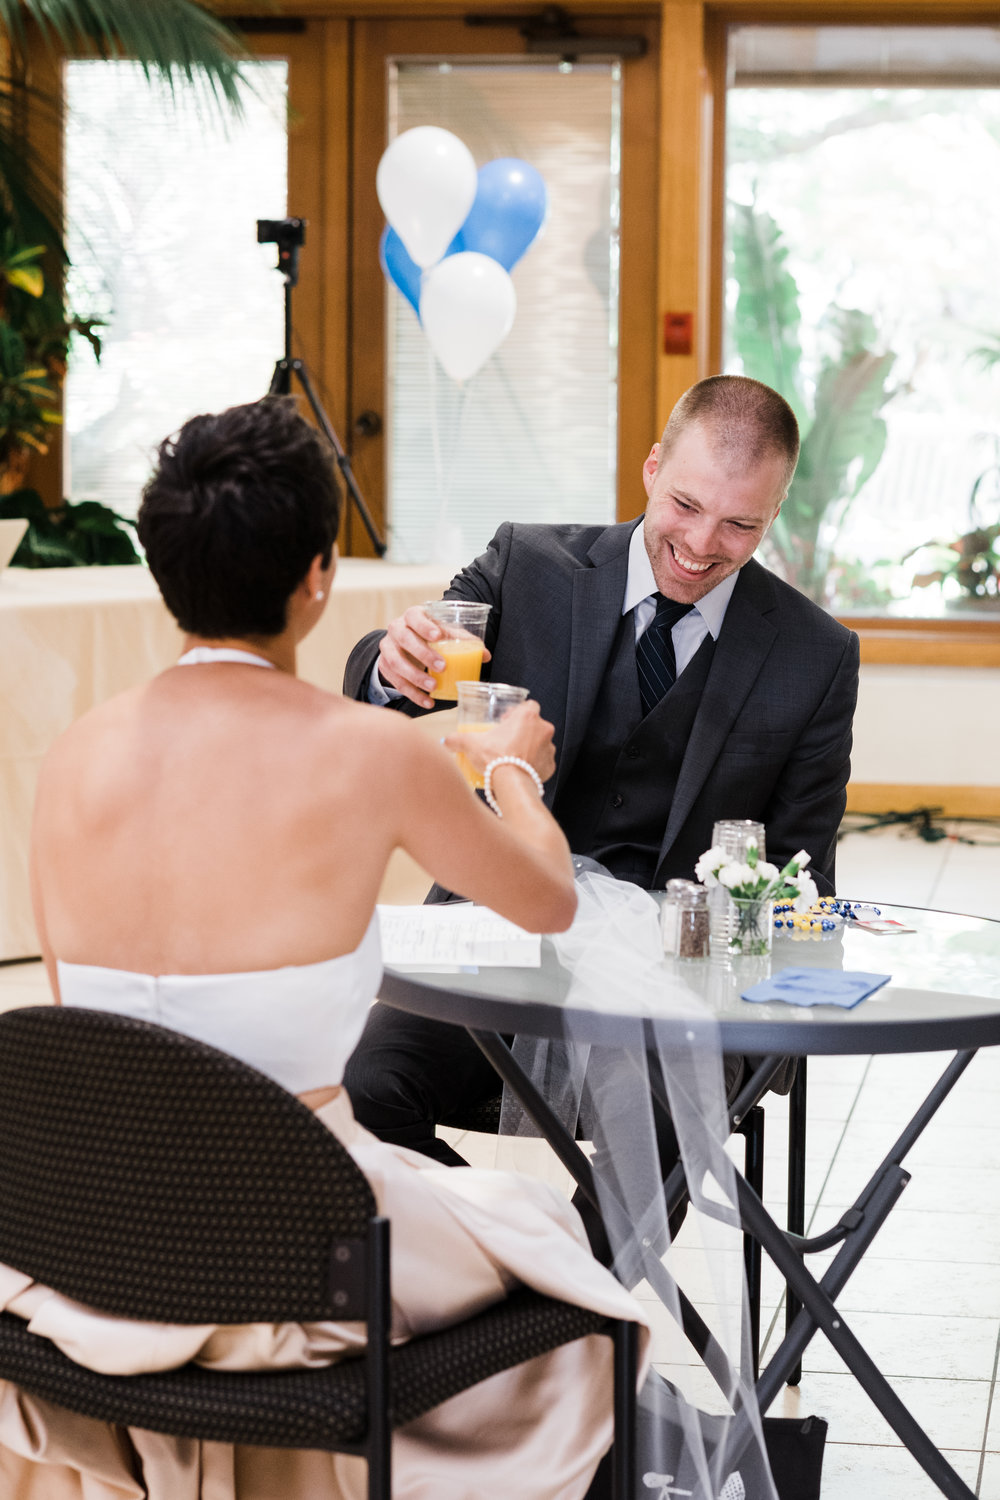 Bride and groom raise their cups to toast each other.